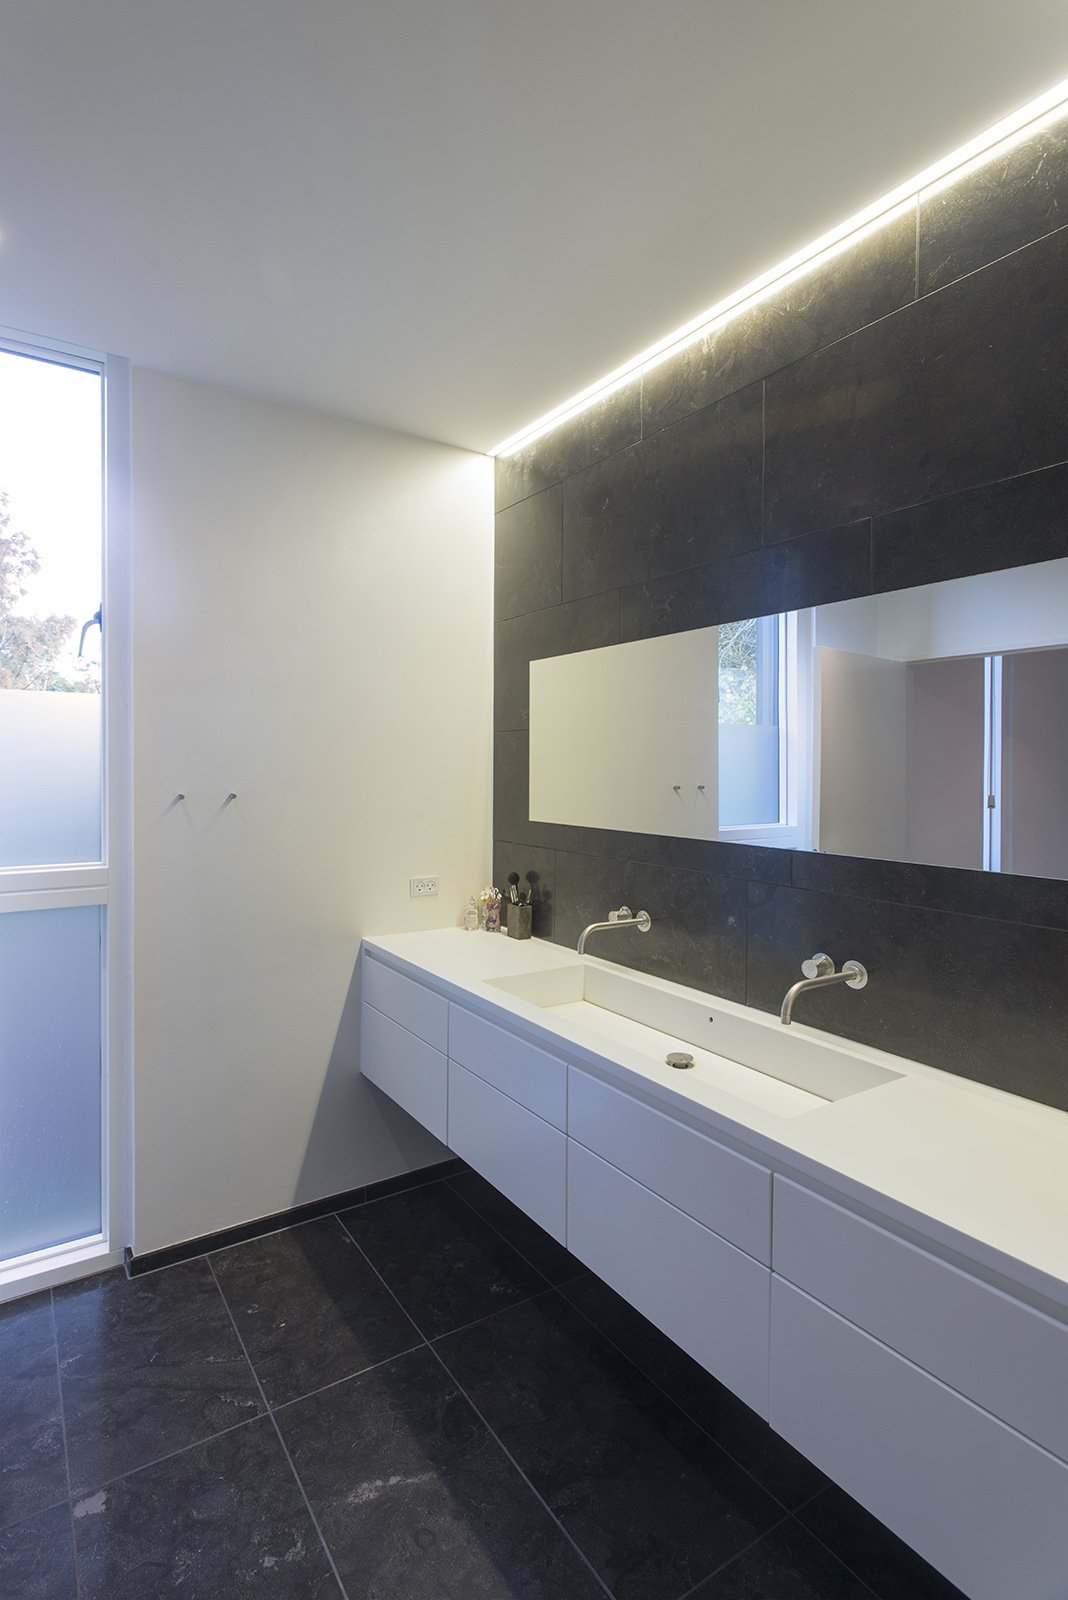 Vola fixtures are used in the bathroom.  Villa R by Diana Budds